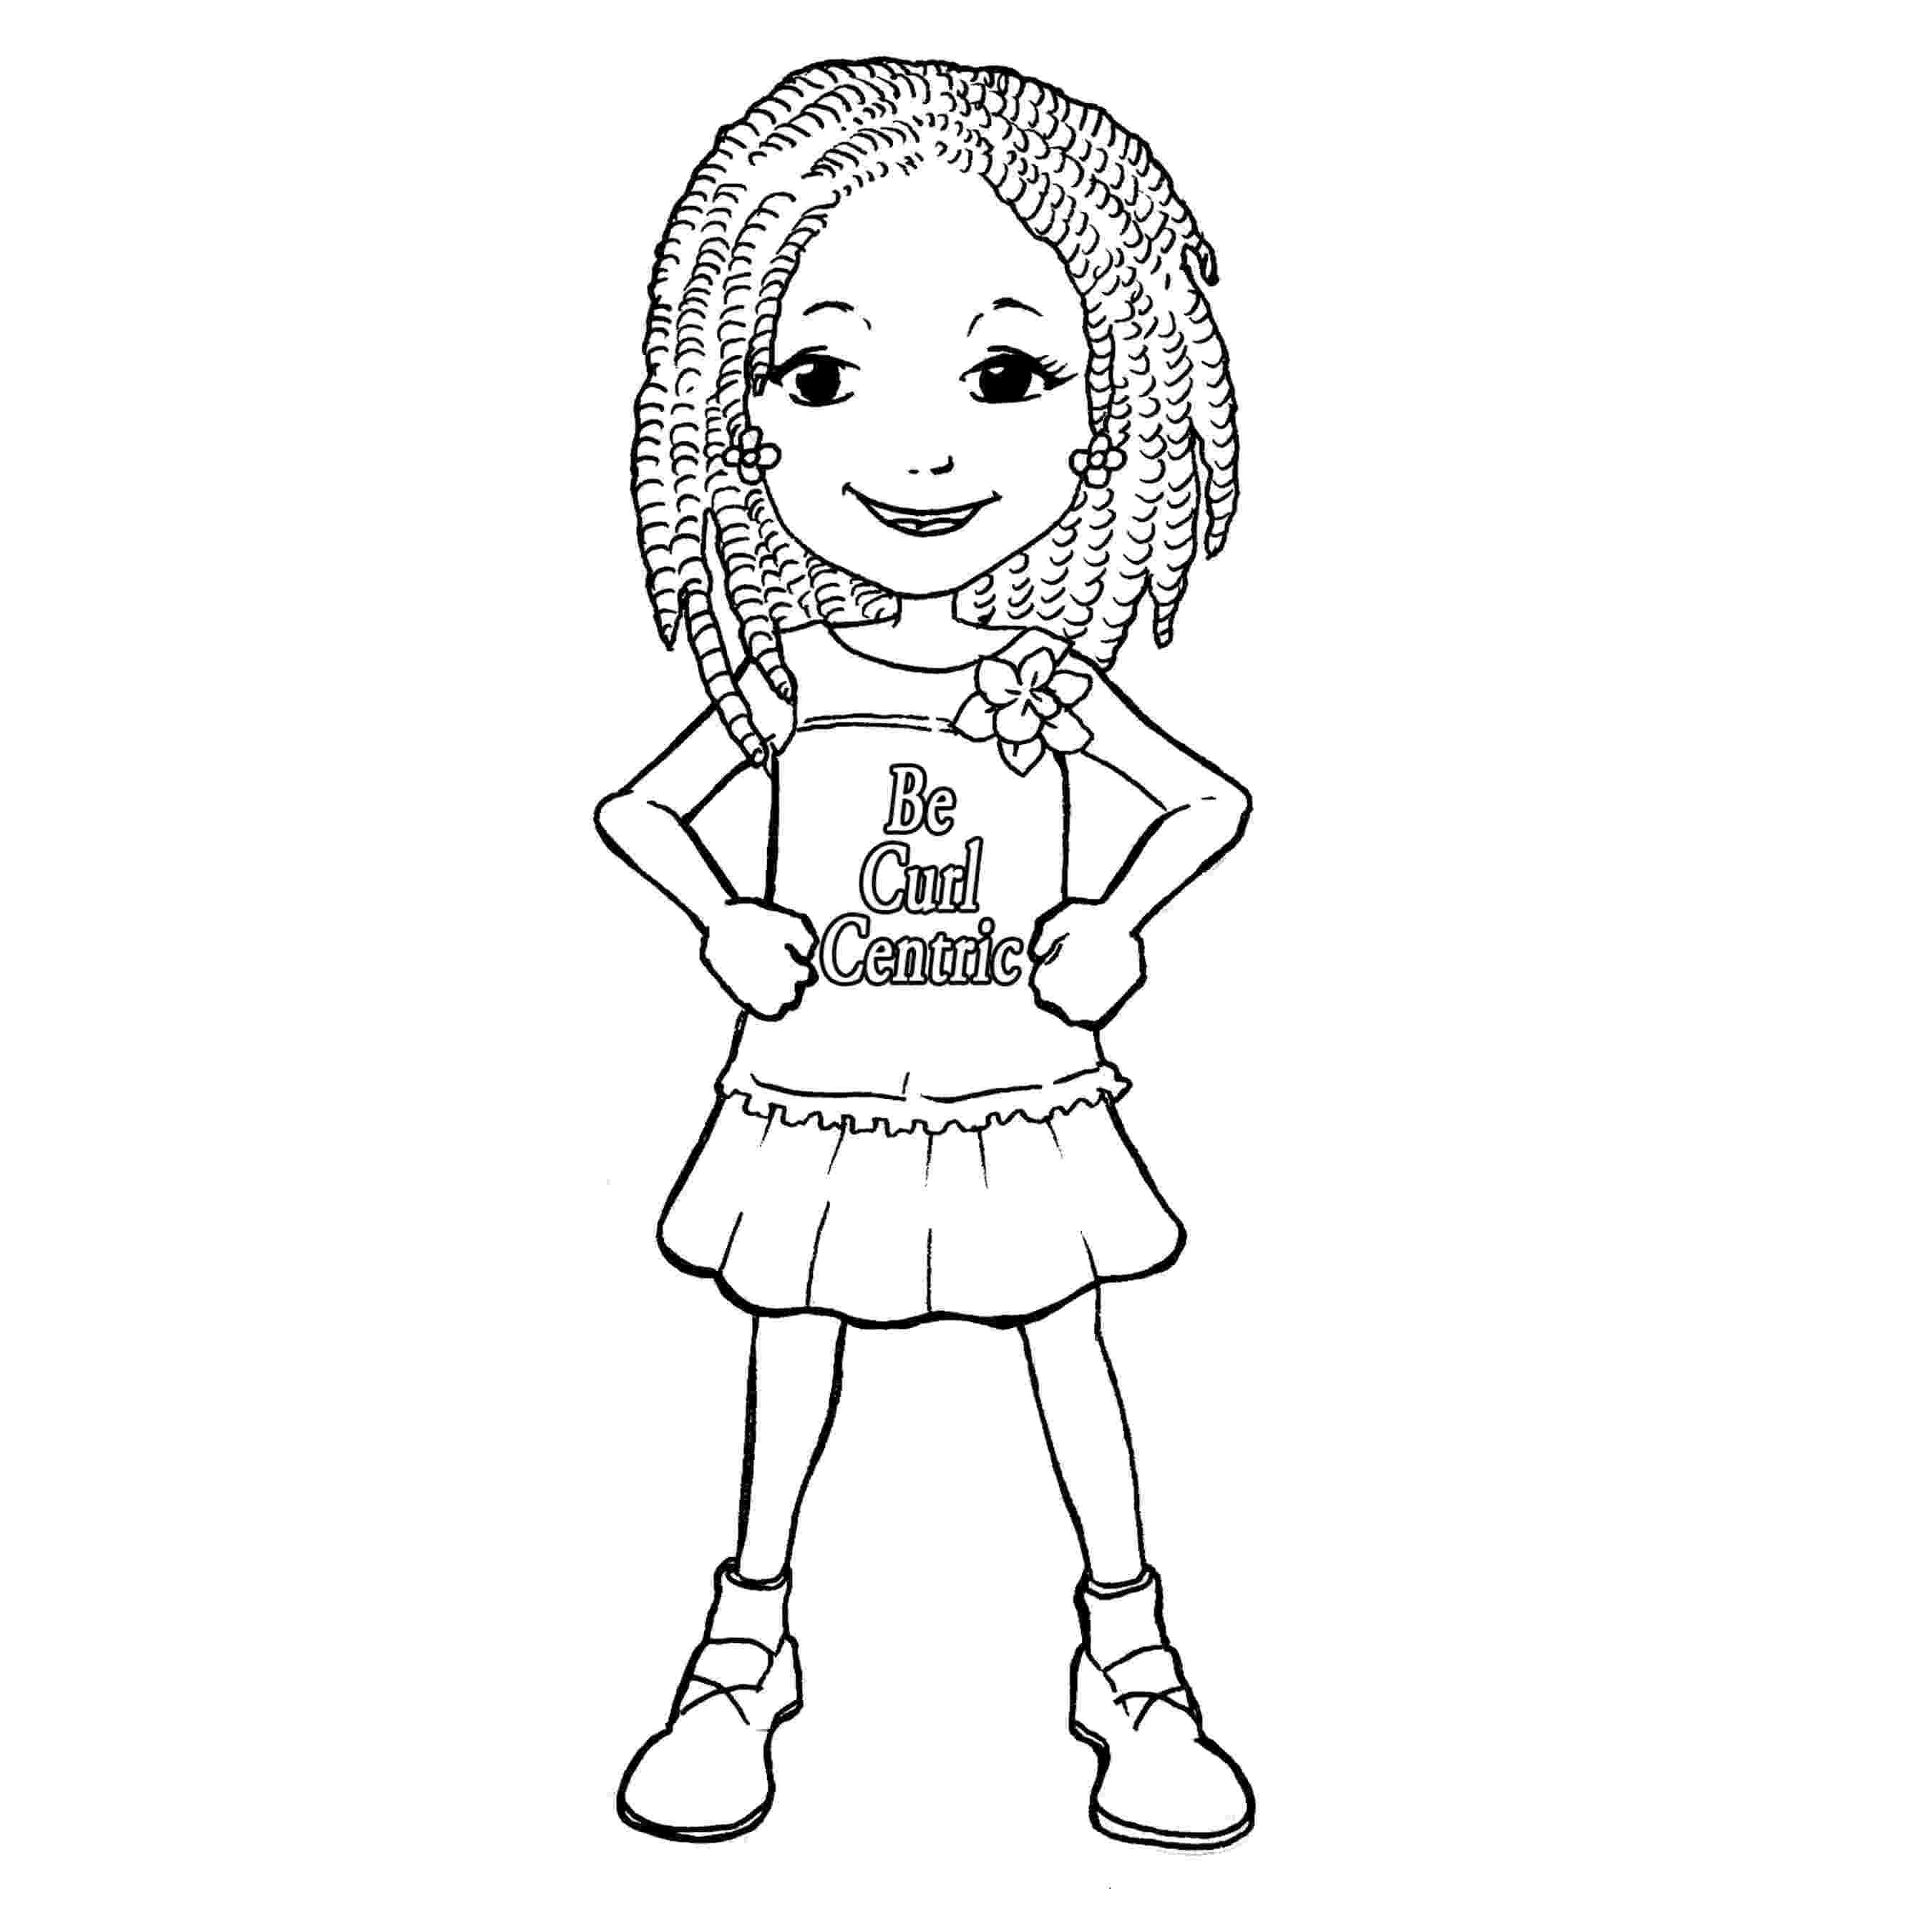 hair coloring pages brushing hair amy rose coloring page wecoloringpagecom pages coloring hair